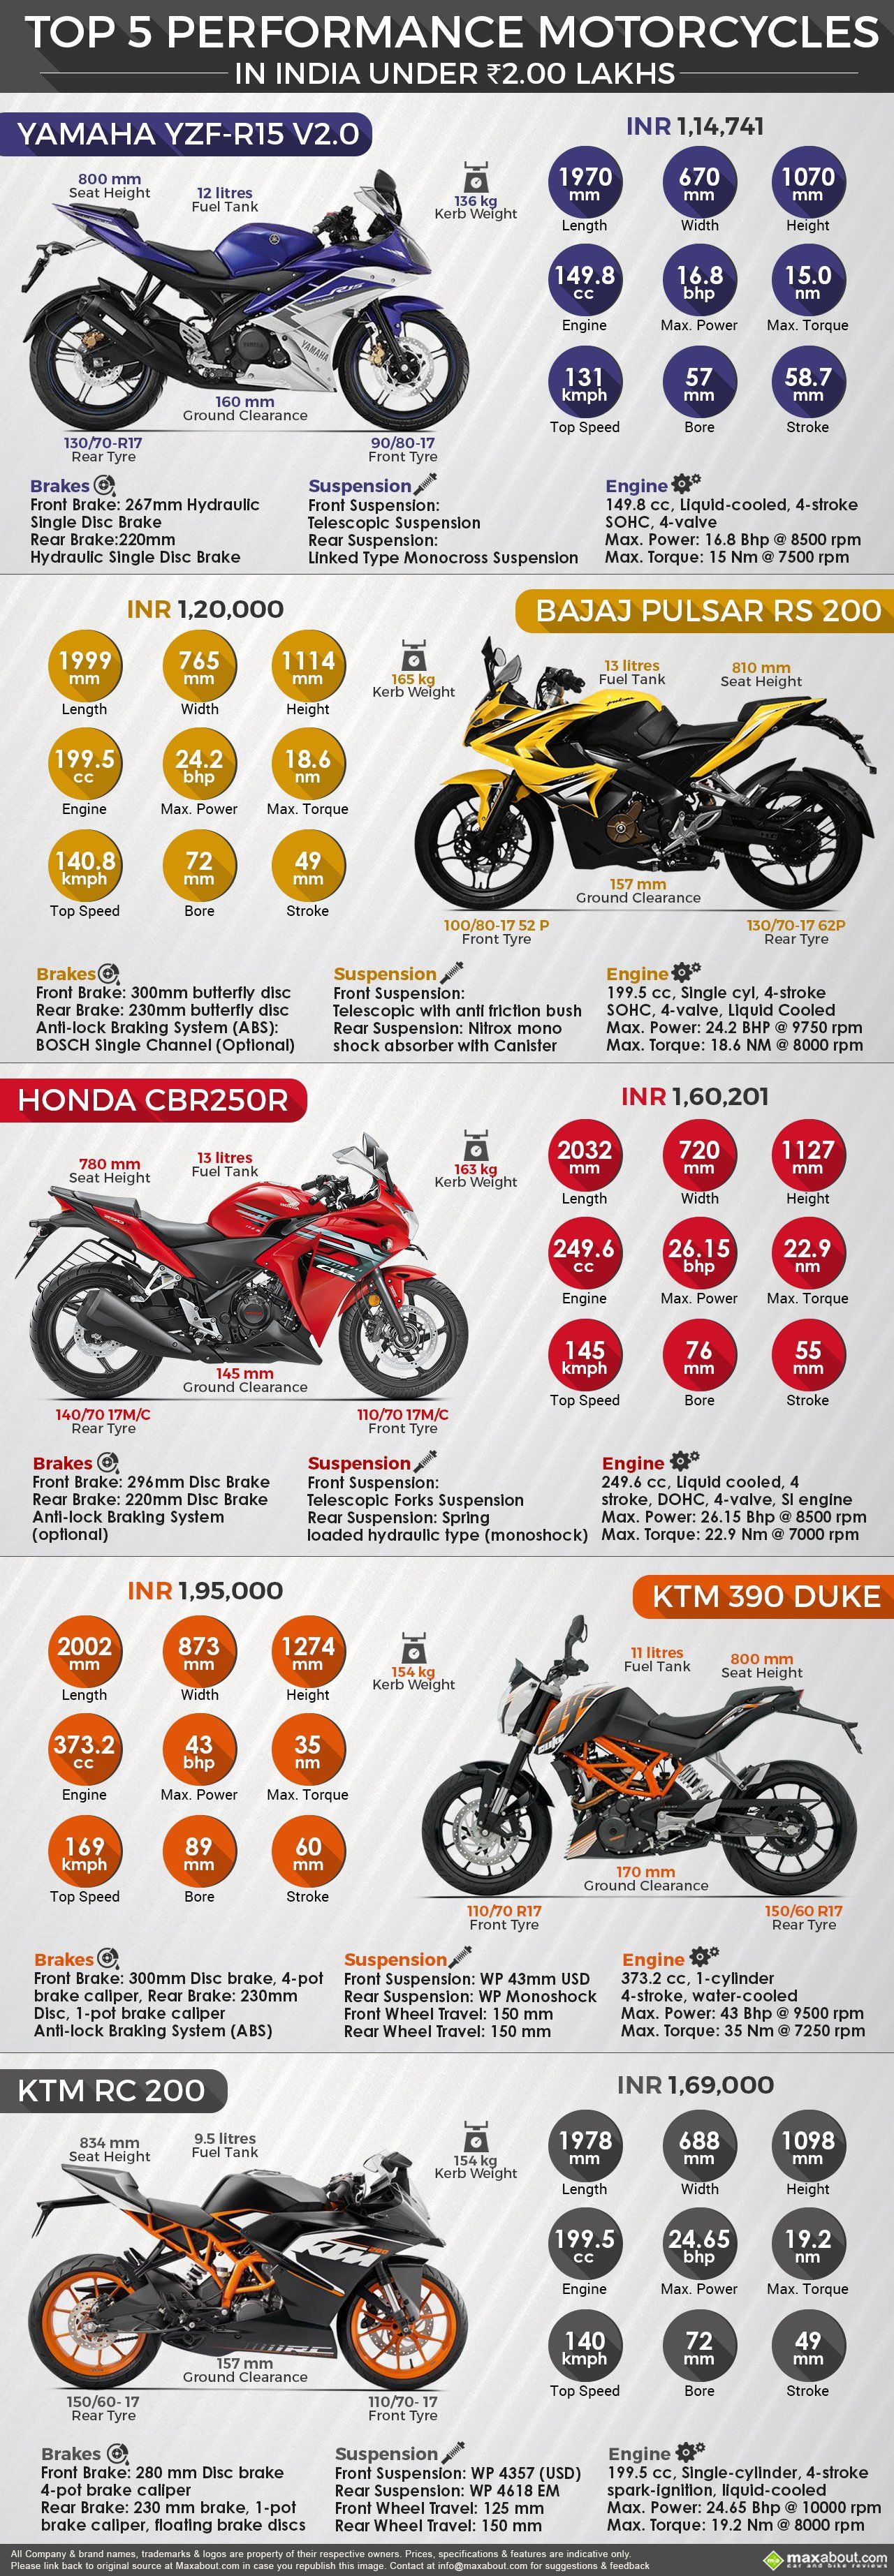 Top 5 Performance Motorcycles In India Under Inr 2 Lakh With Images Motorcycles In India Motorcycle Types